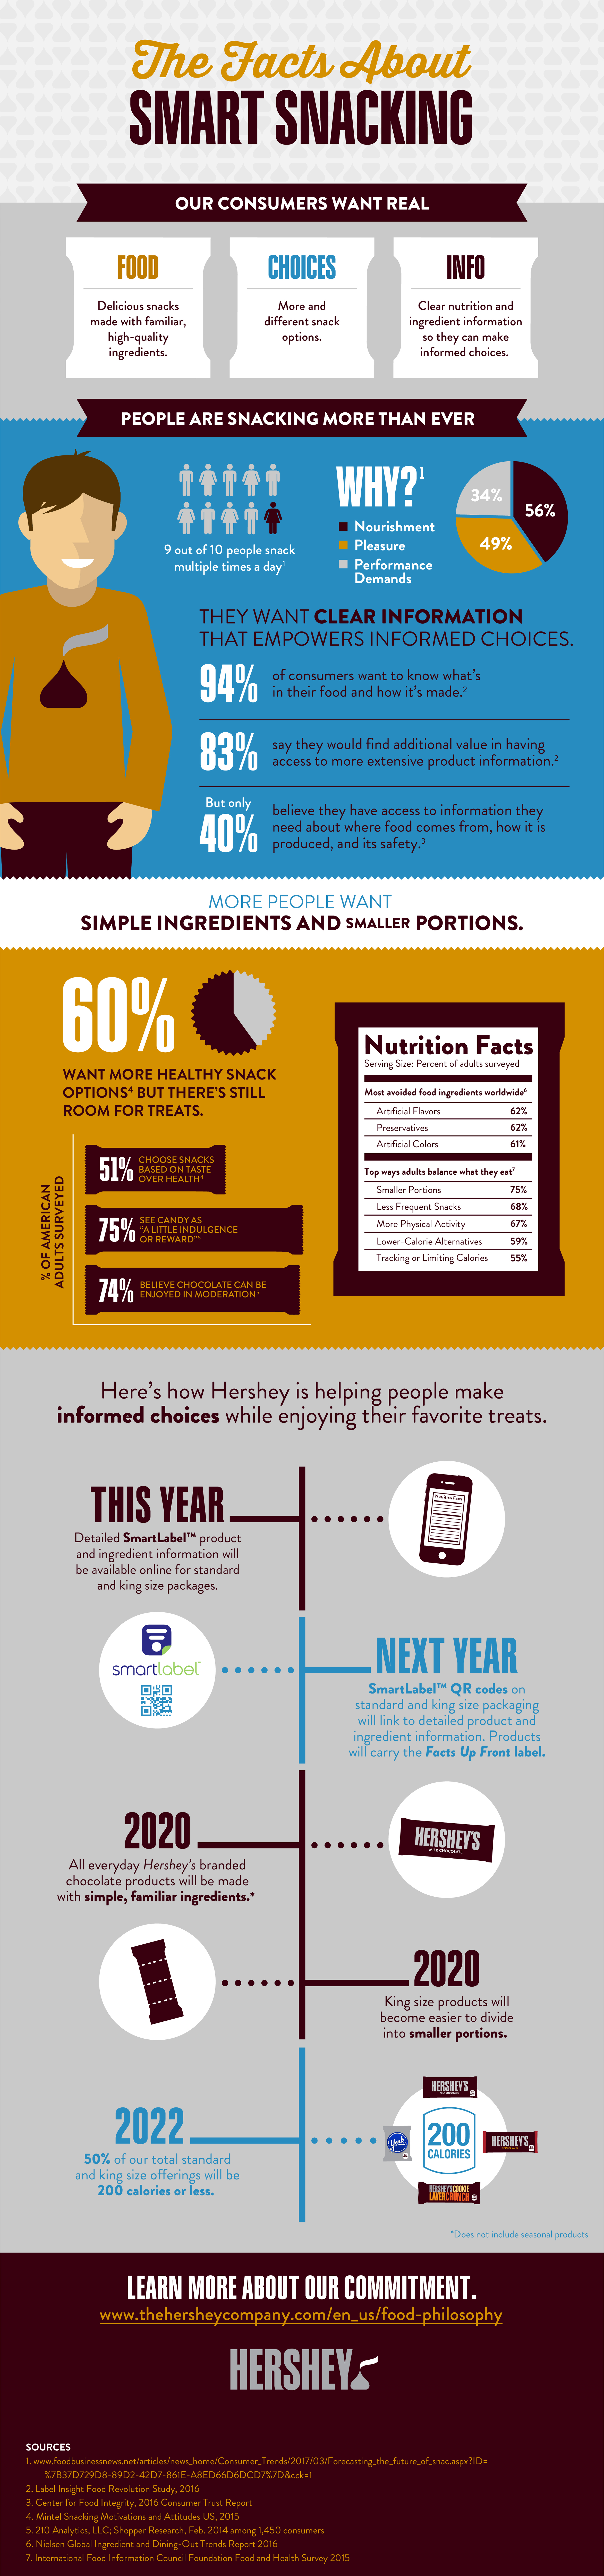 the_facts_about_smart_snacking_hershey